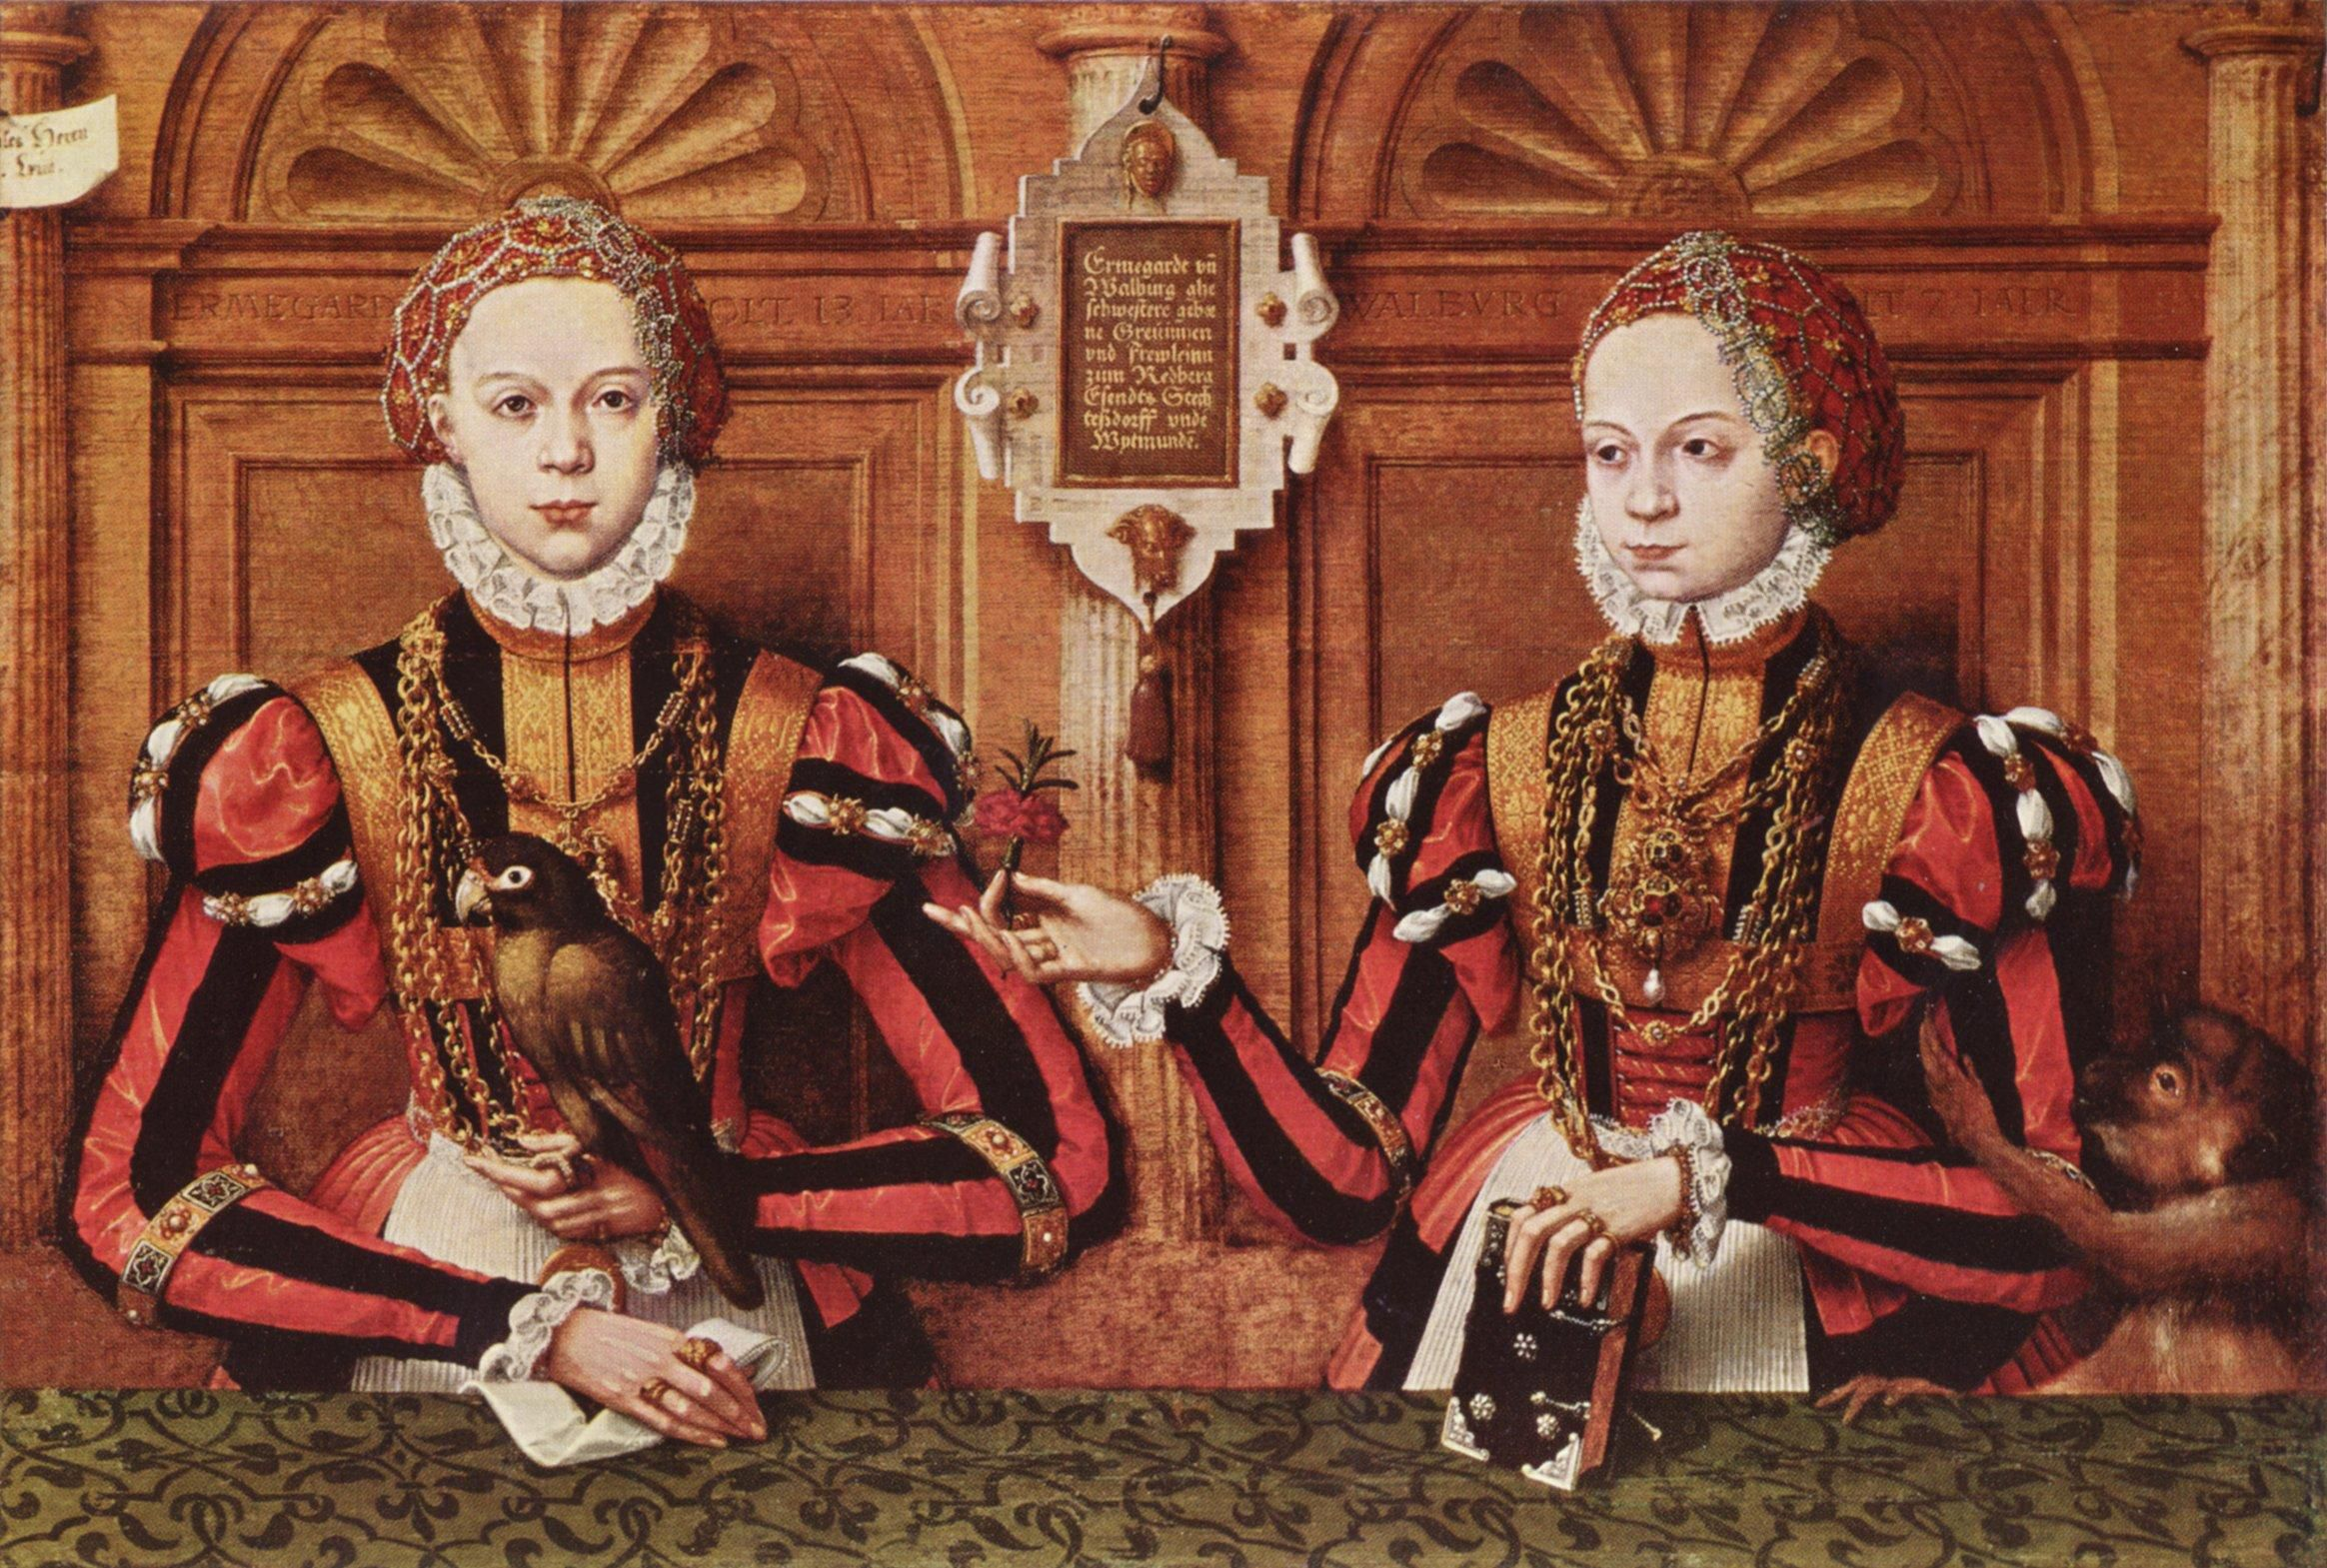 SP_1564. Hermann tom Ring, Ermengard und Walburg countess von Rietberg